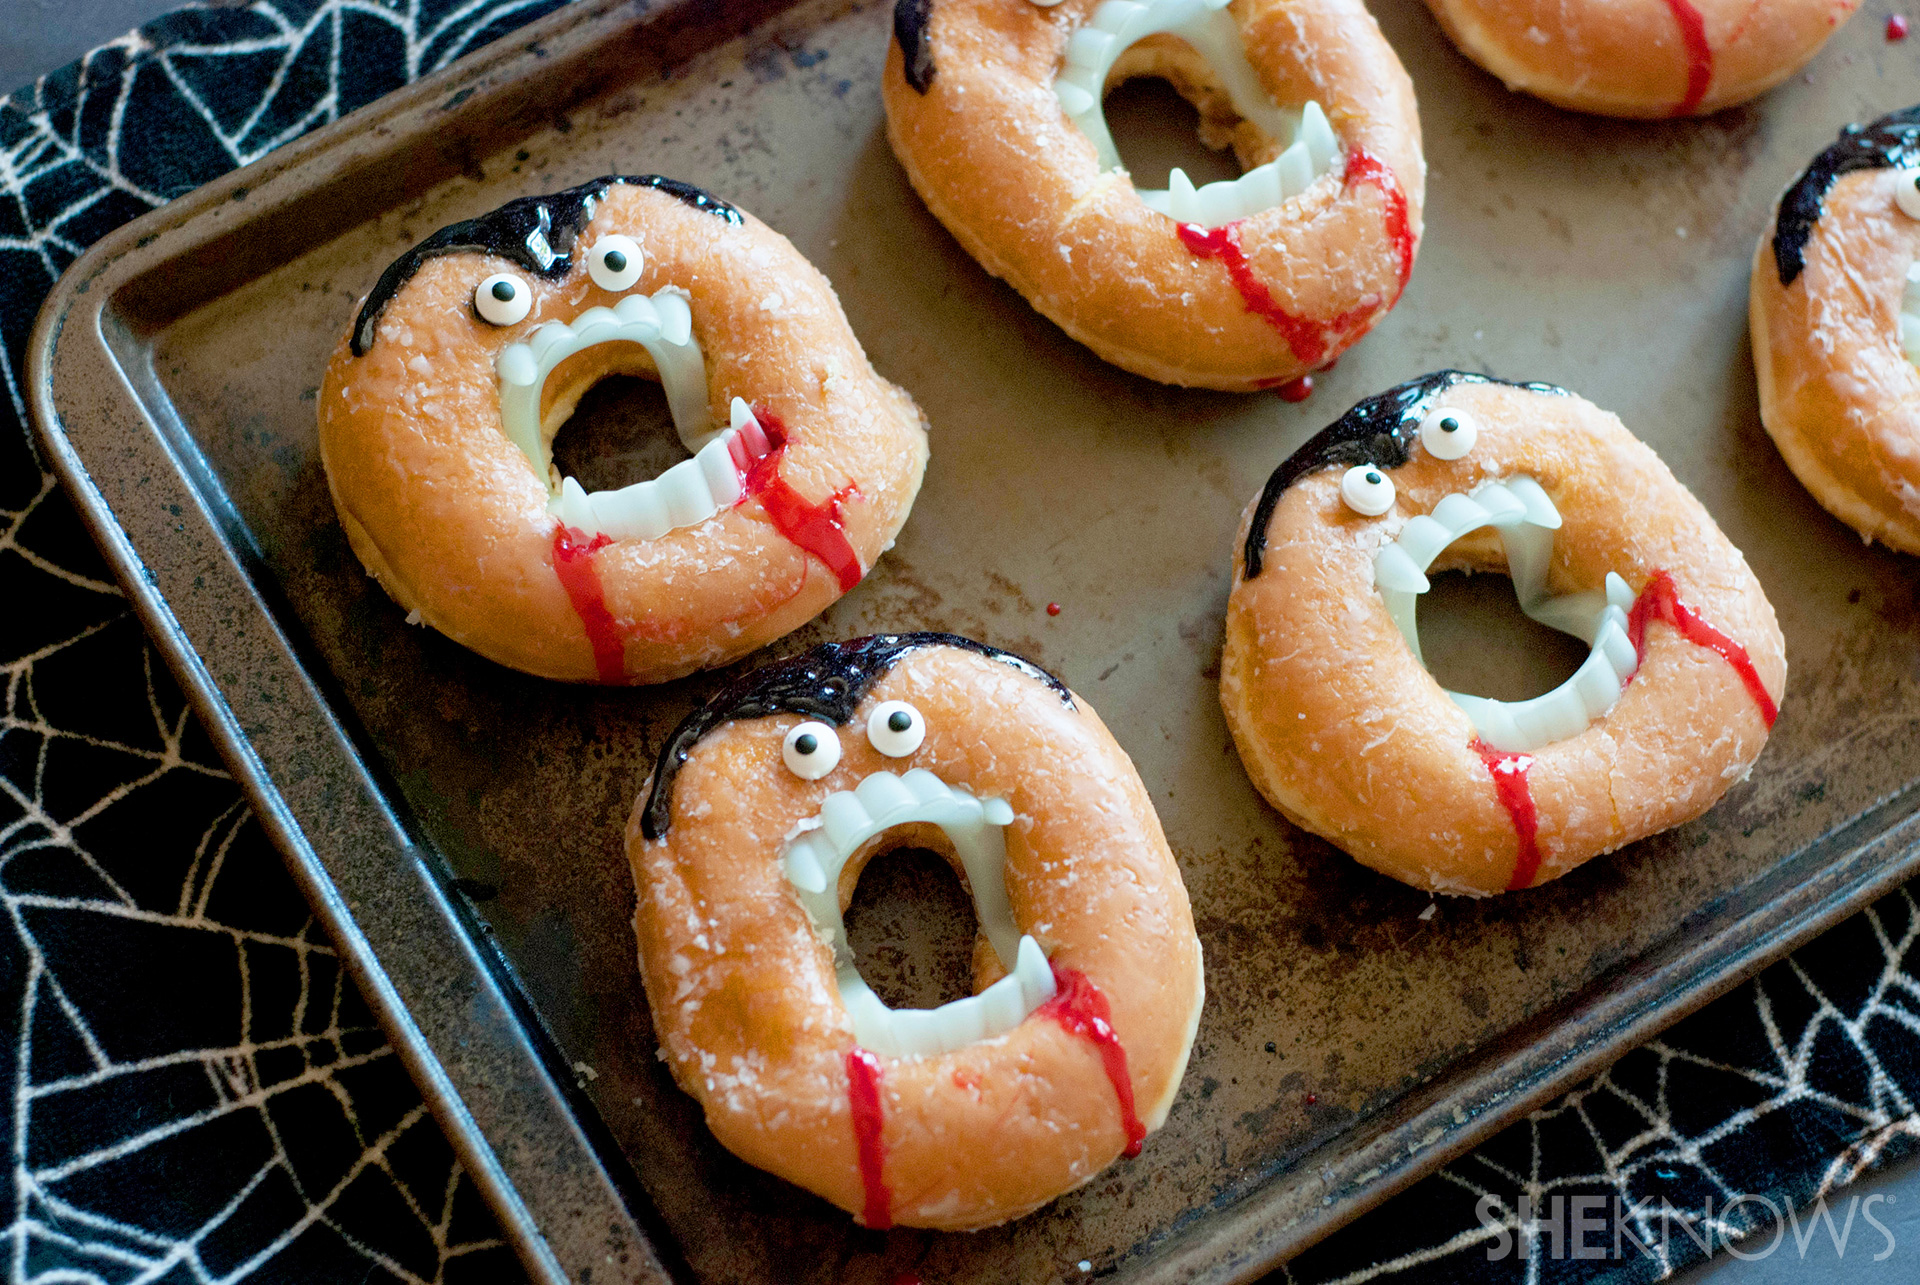 Turn Doughnuts Into A Creepy No Bake Vampire Treat